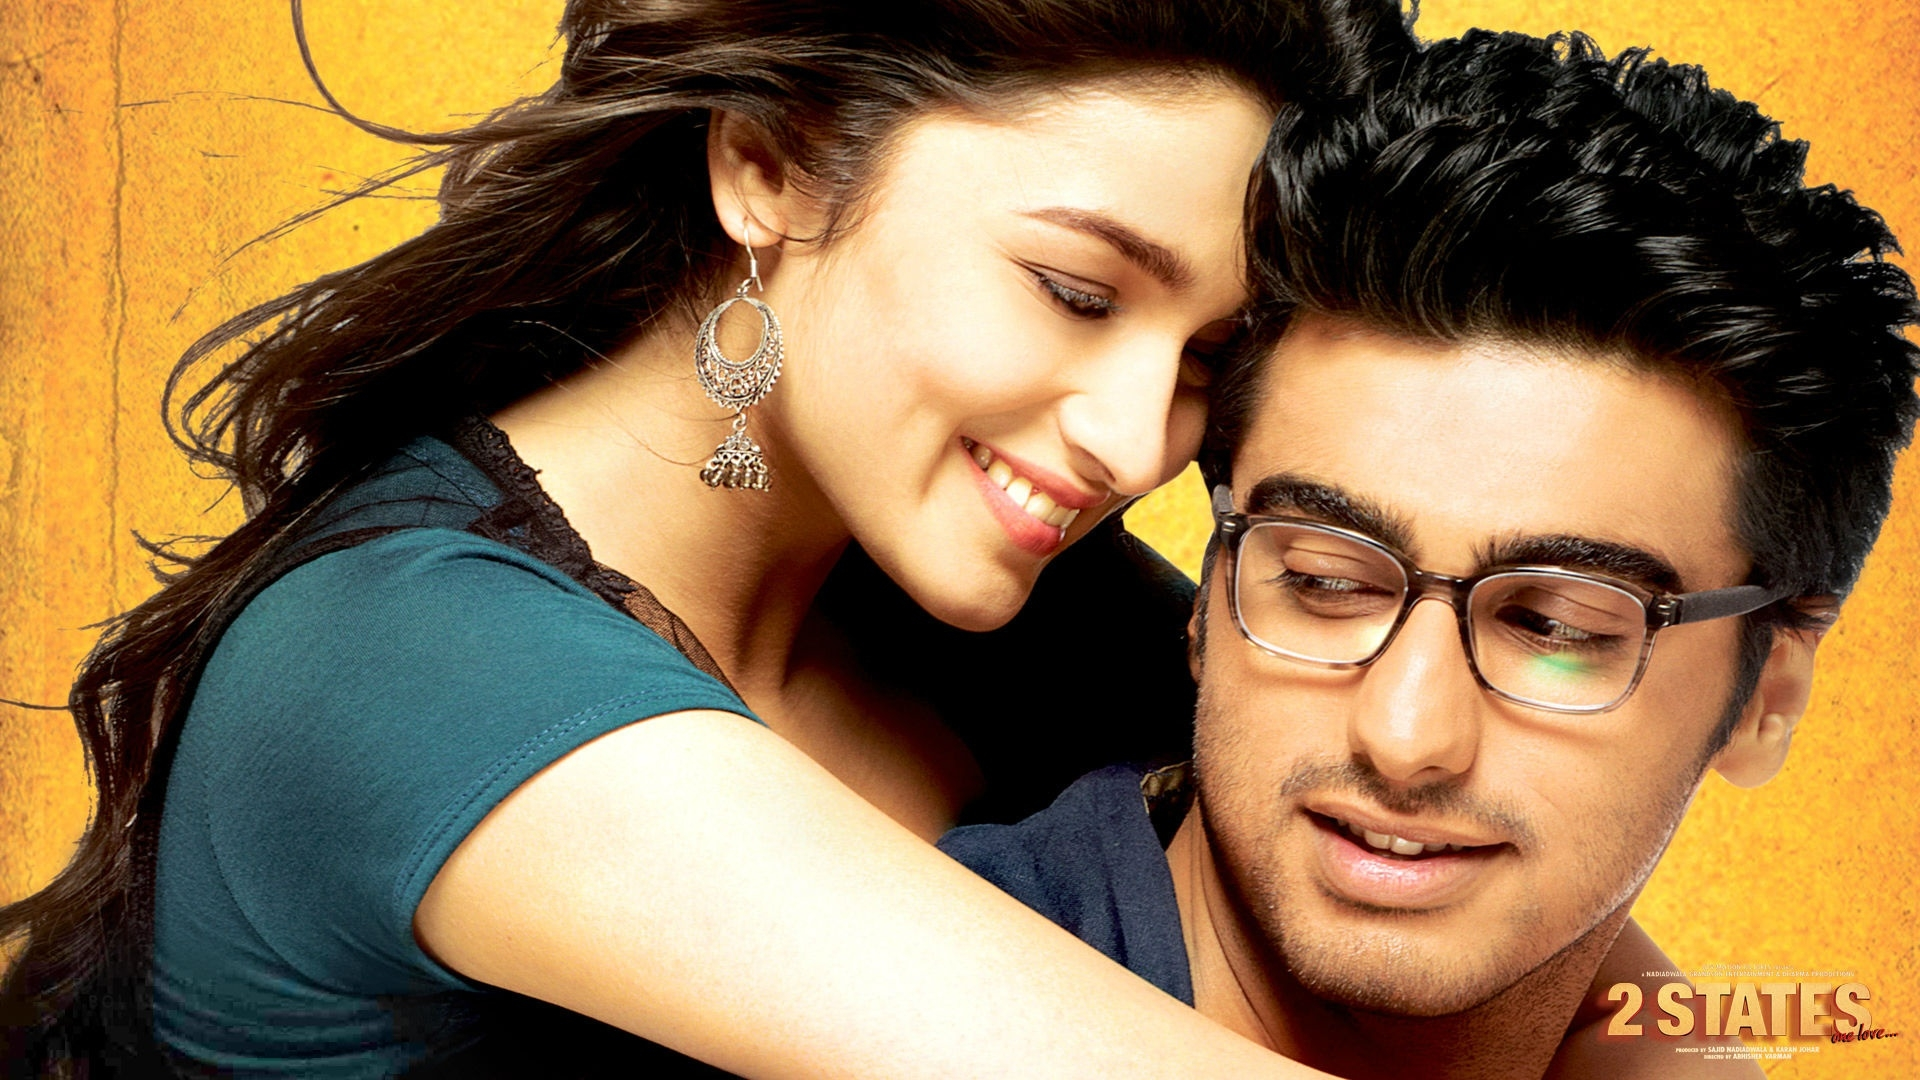 Romantic bollywood movie wallpapers indian love wallpaper love couples wallpapers 2 states indian film romantic scene 1920x1080 voltagebd Images